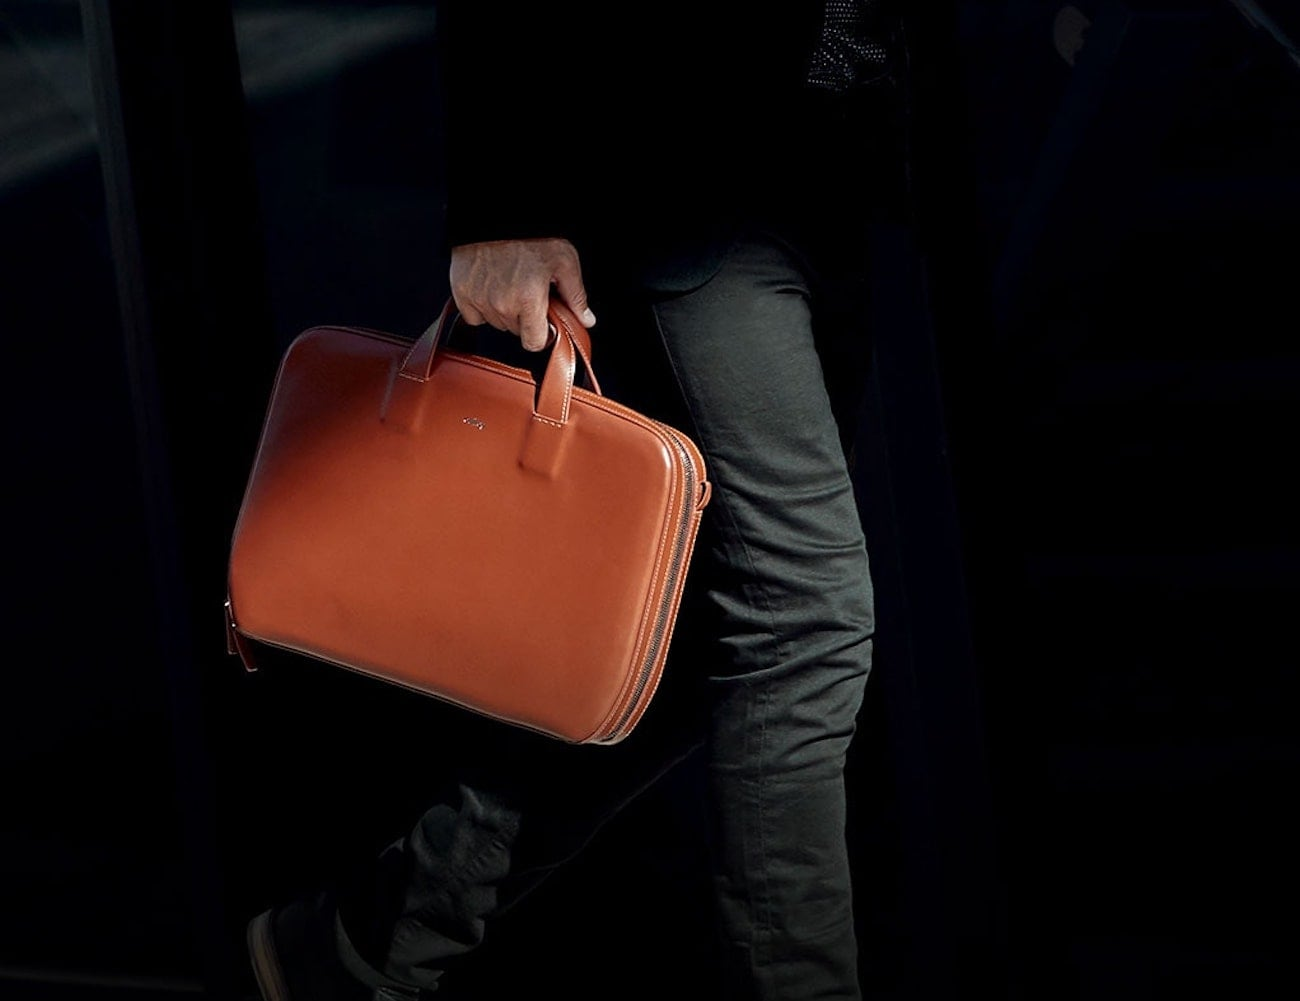 Bellroy Leather Laptop Brief makes you feel like a boss